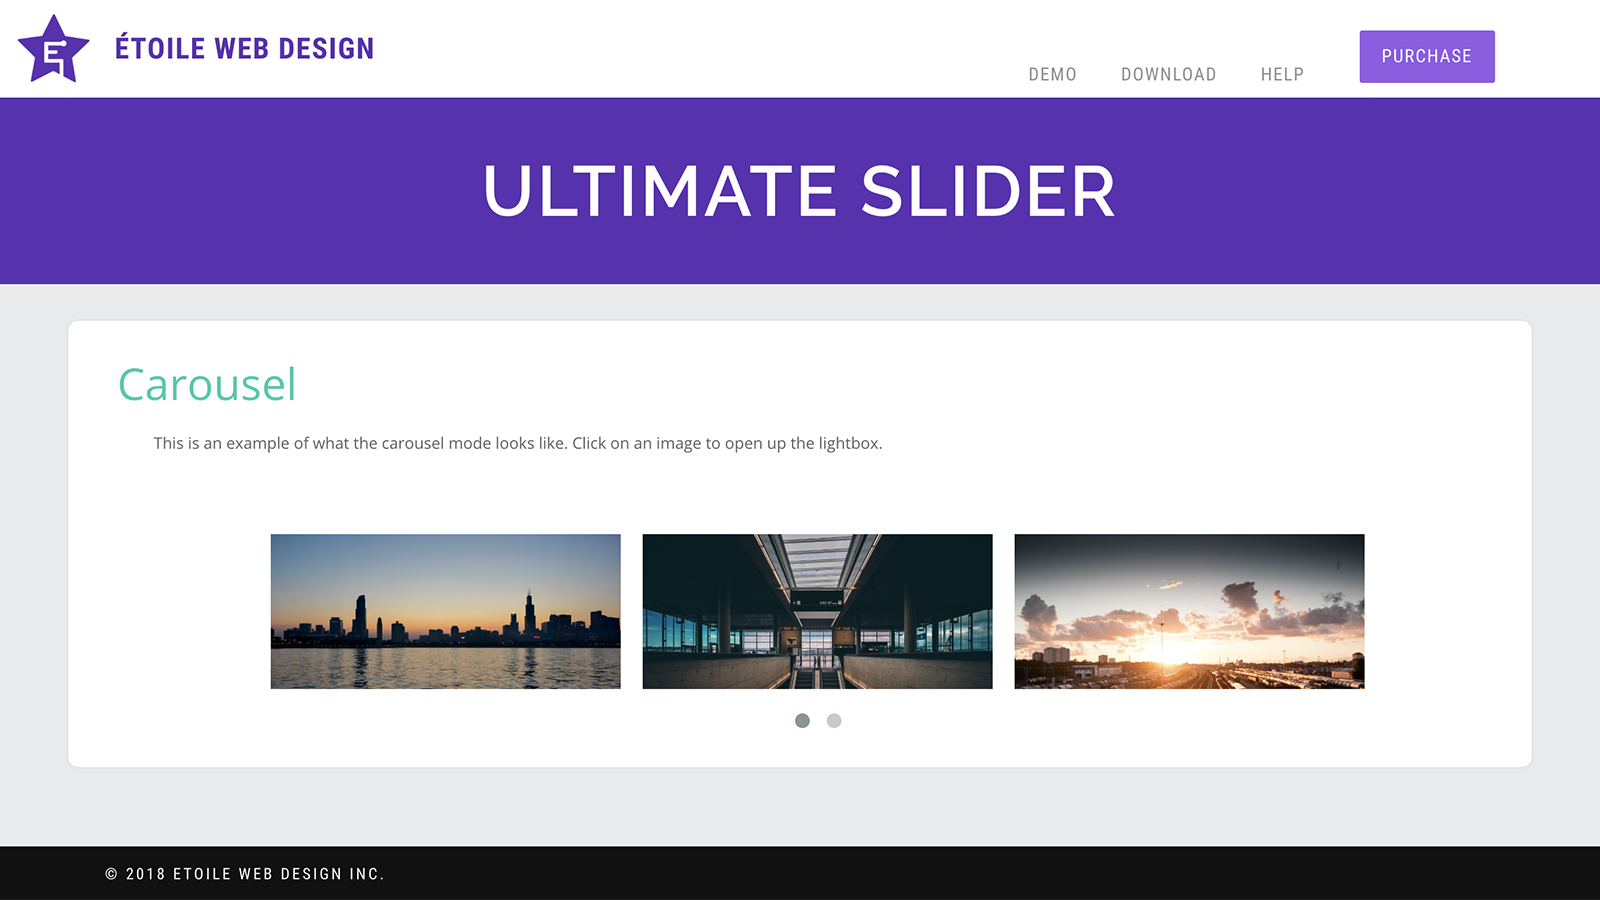 Slider in Carousel Mode